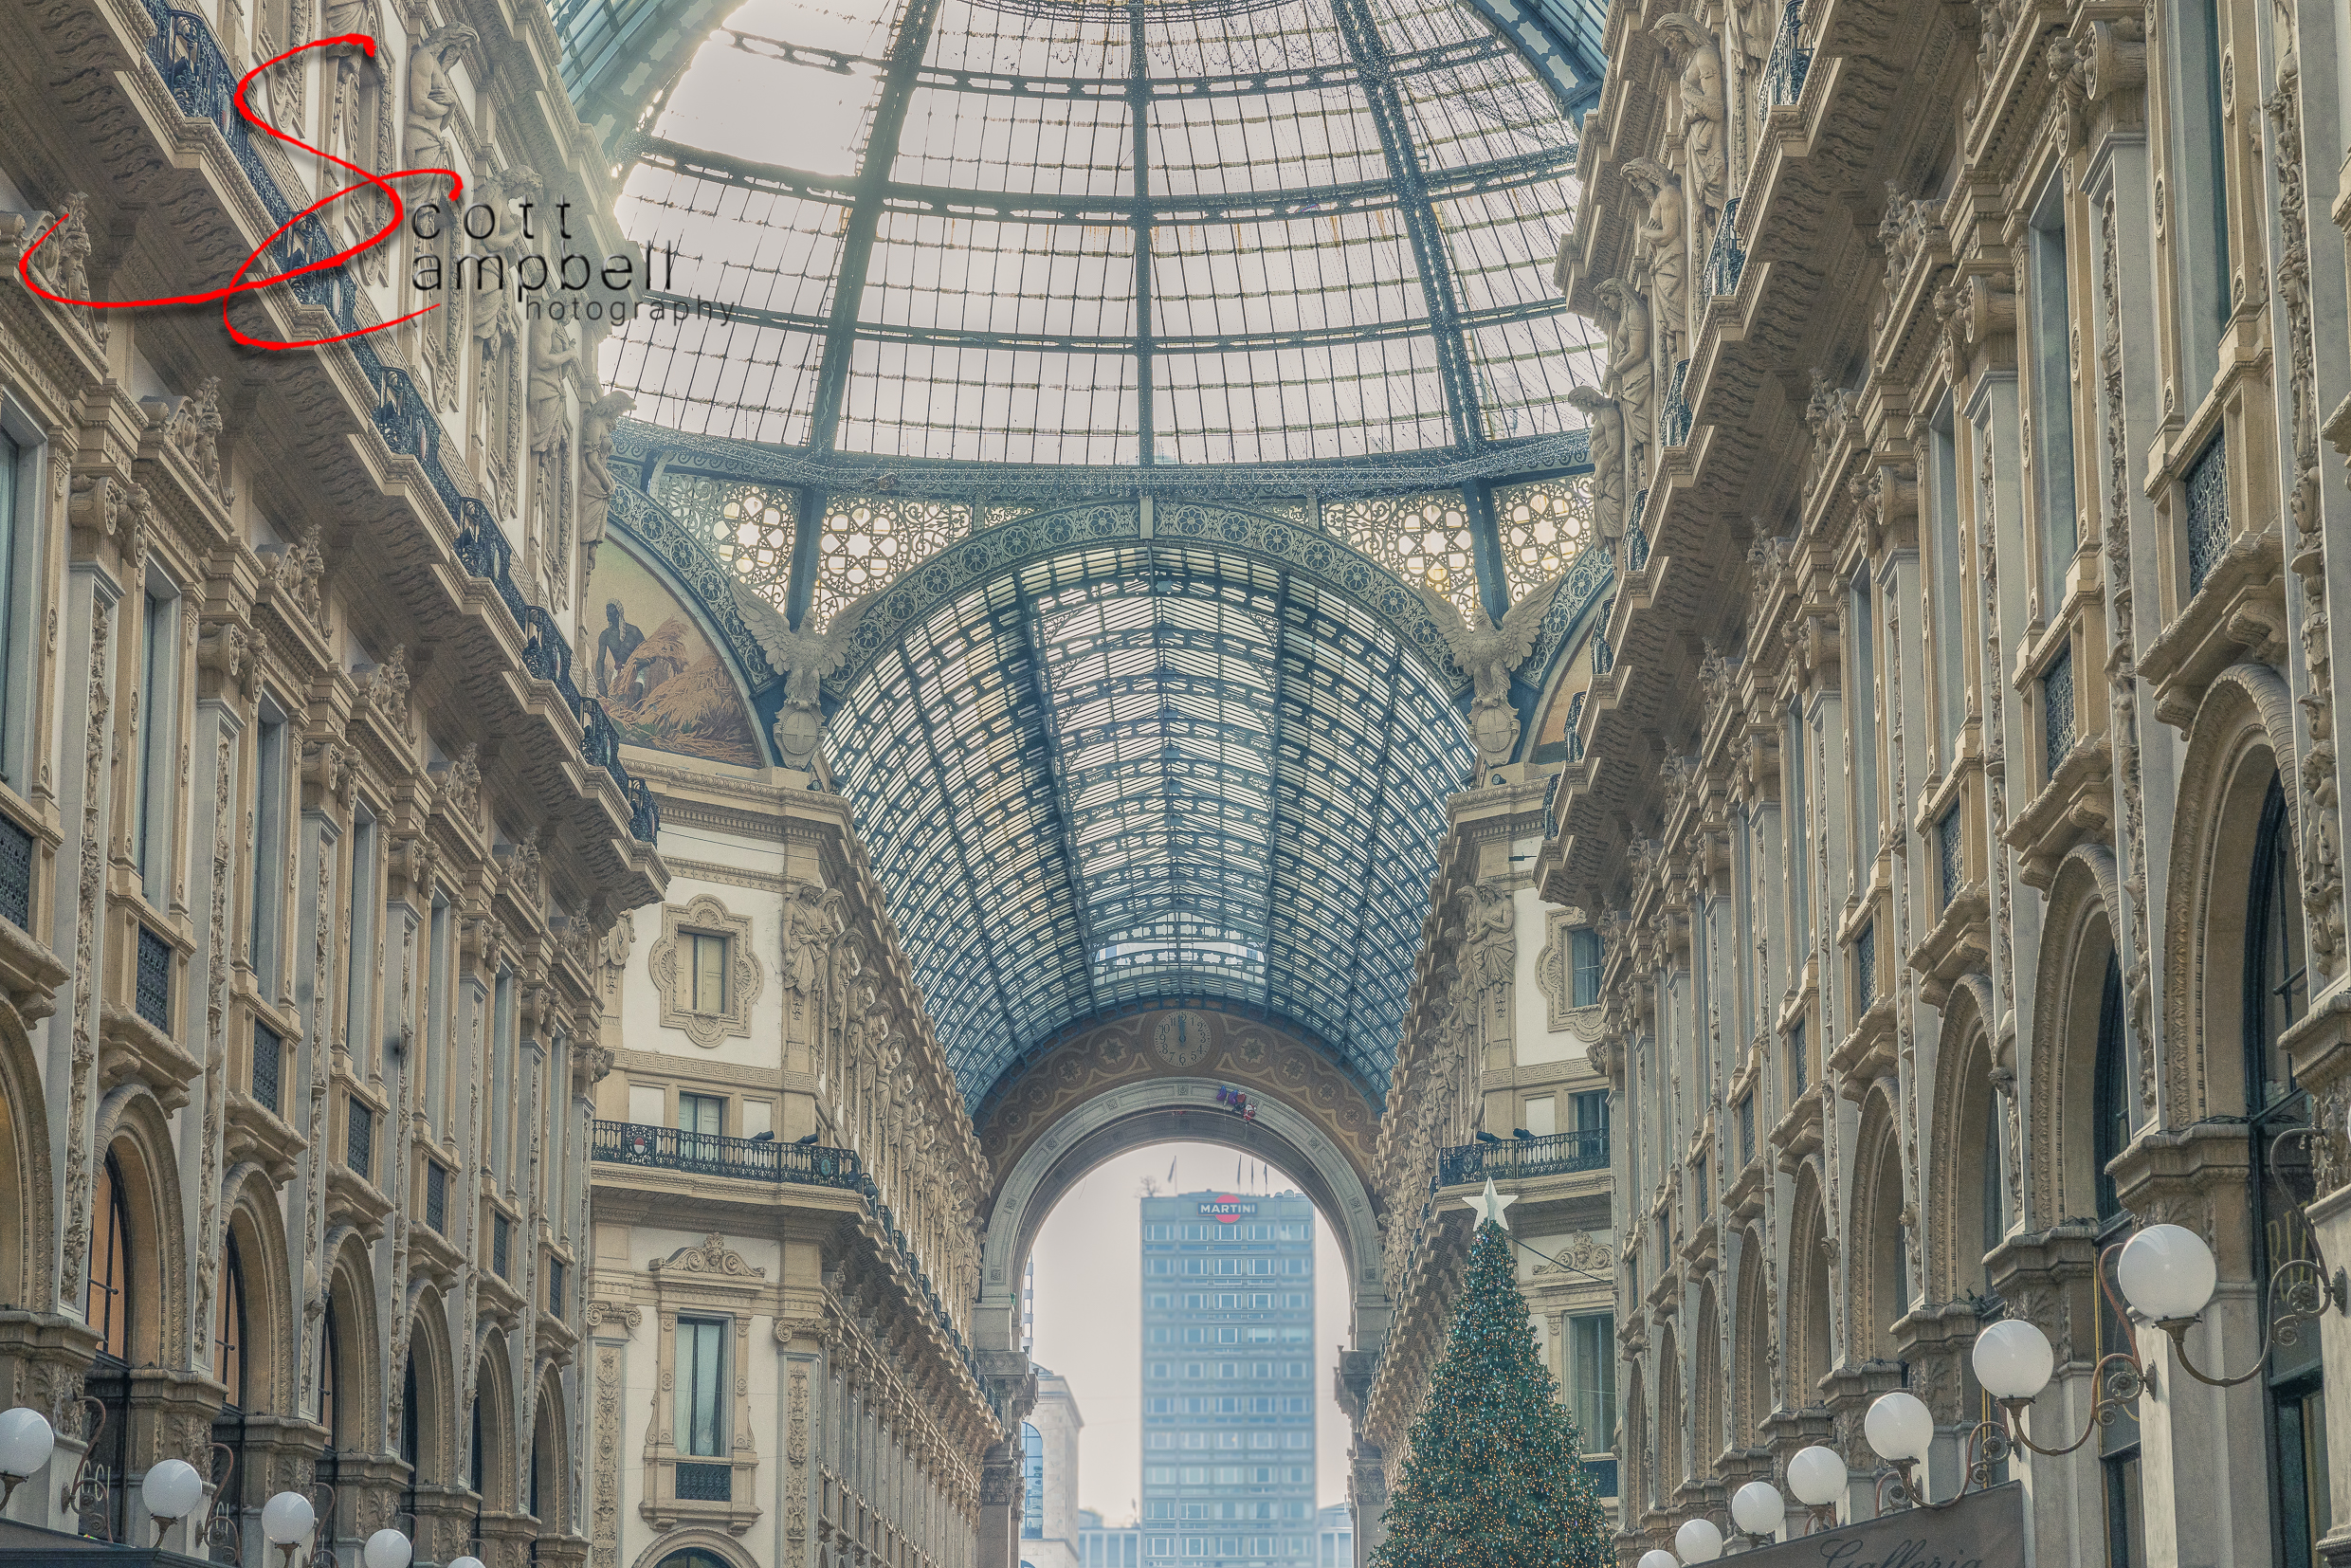 Galleria Vittorio Emanuele II A very popular place to shop and dine in the heart of Milan.